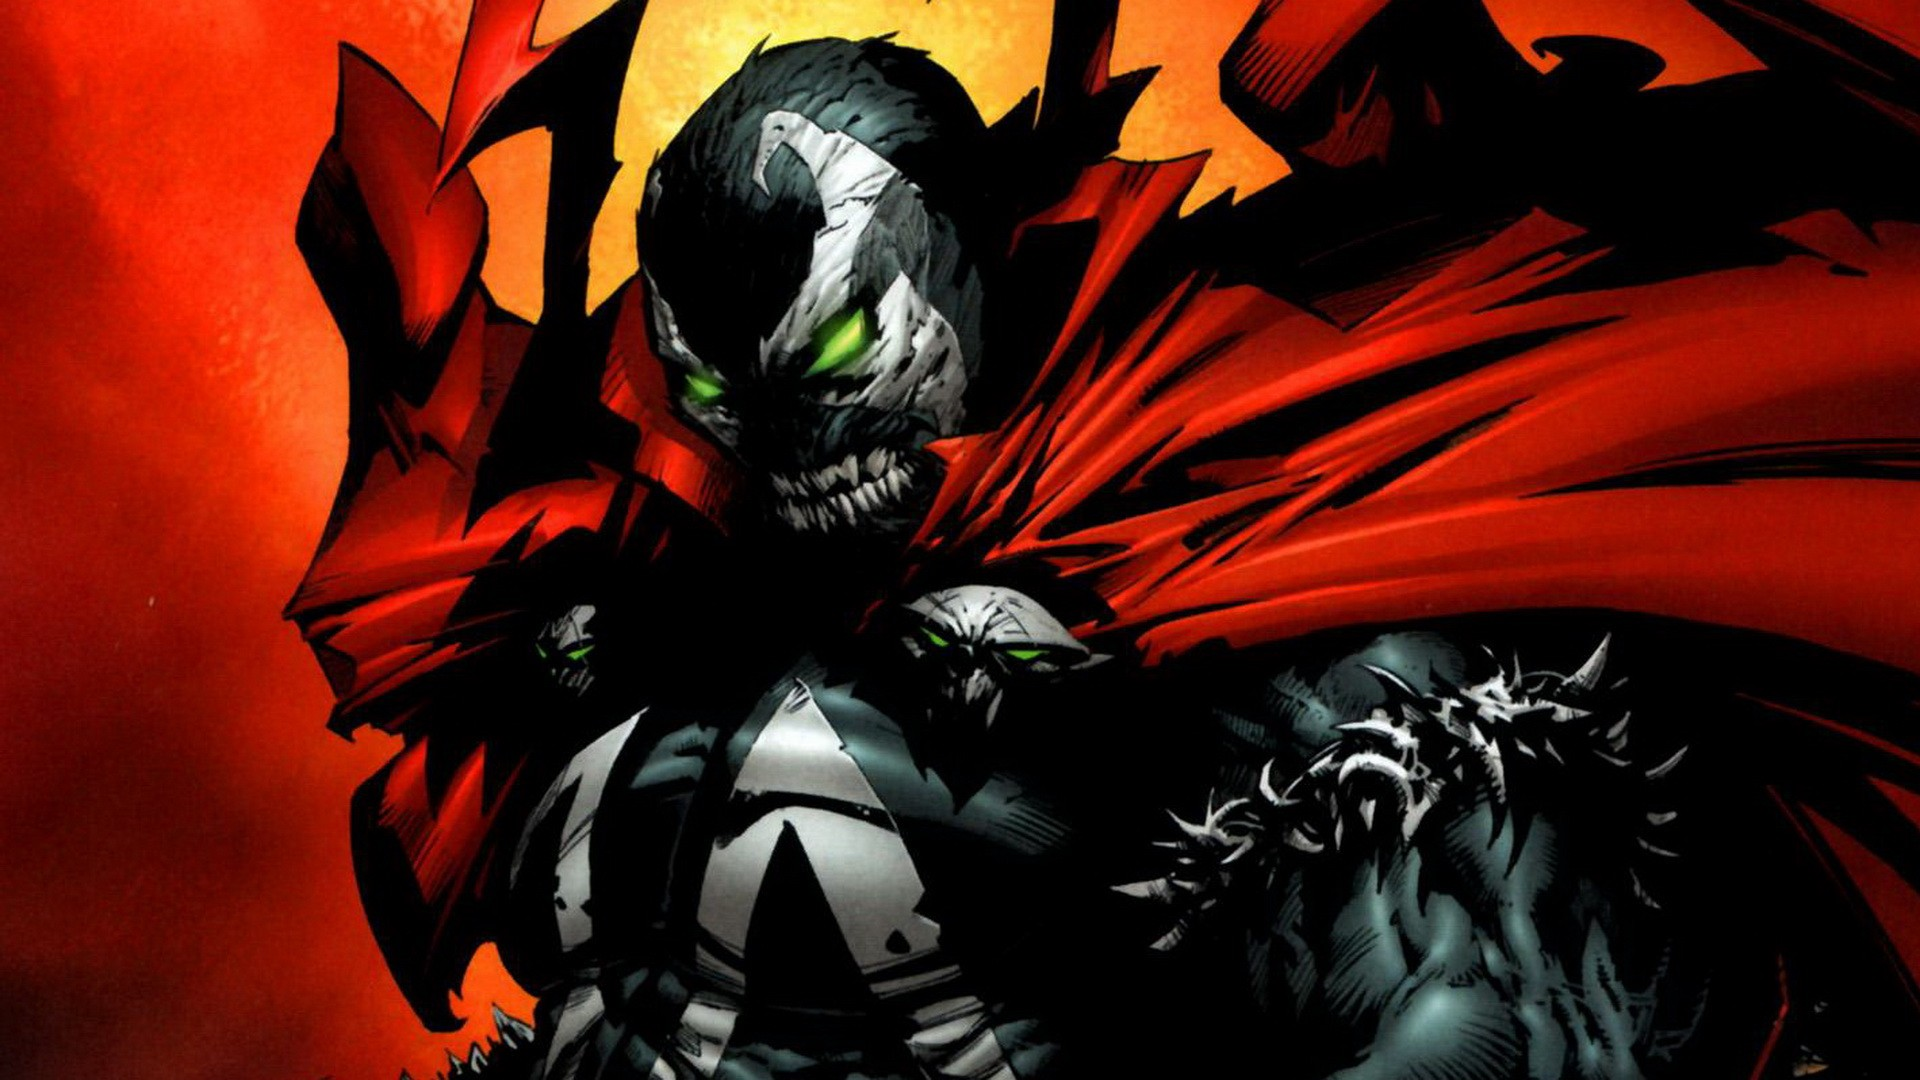 Spawn can join the cast of Mortal Kombat X, creator says